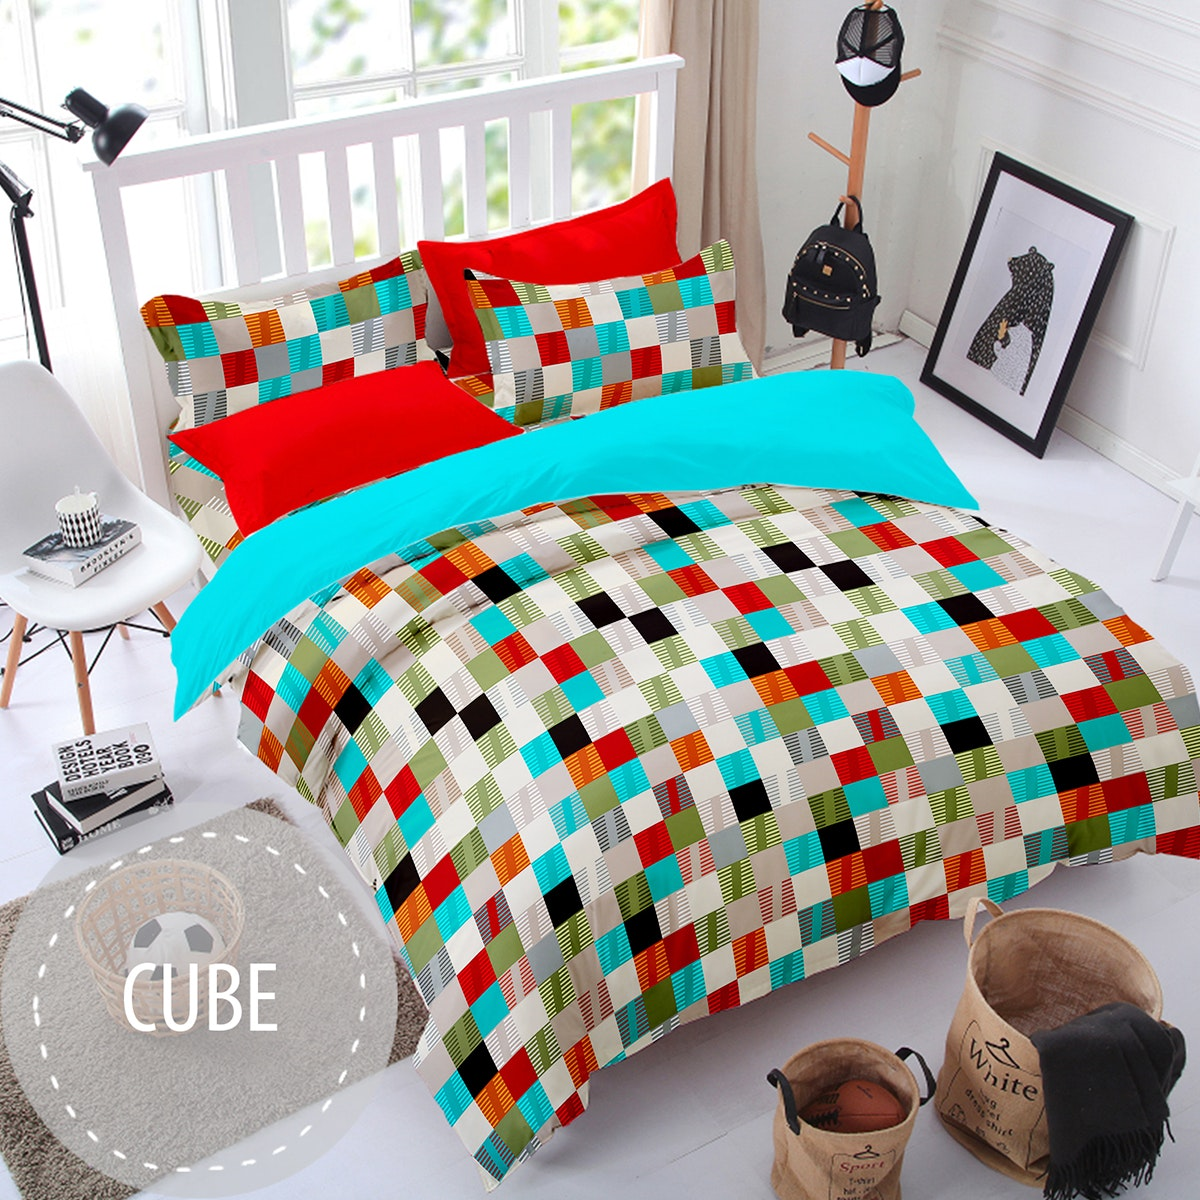 Pesona Sprei Disperse Cube uk 120 T 20